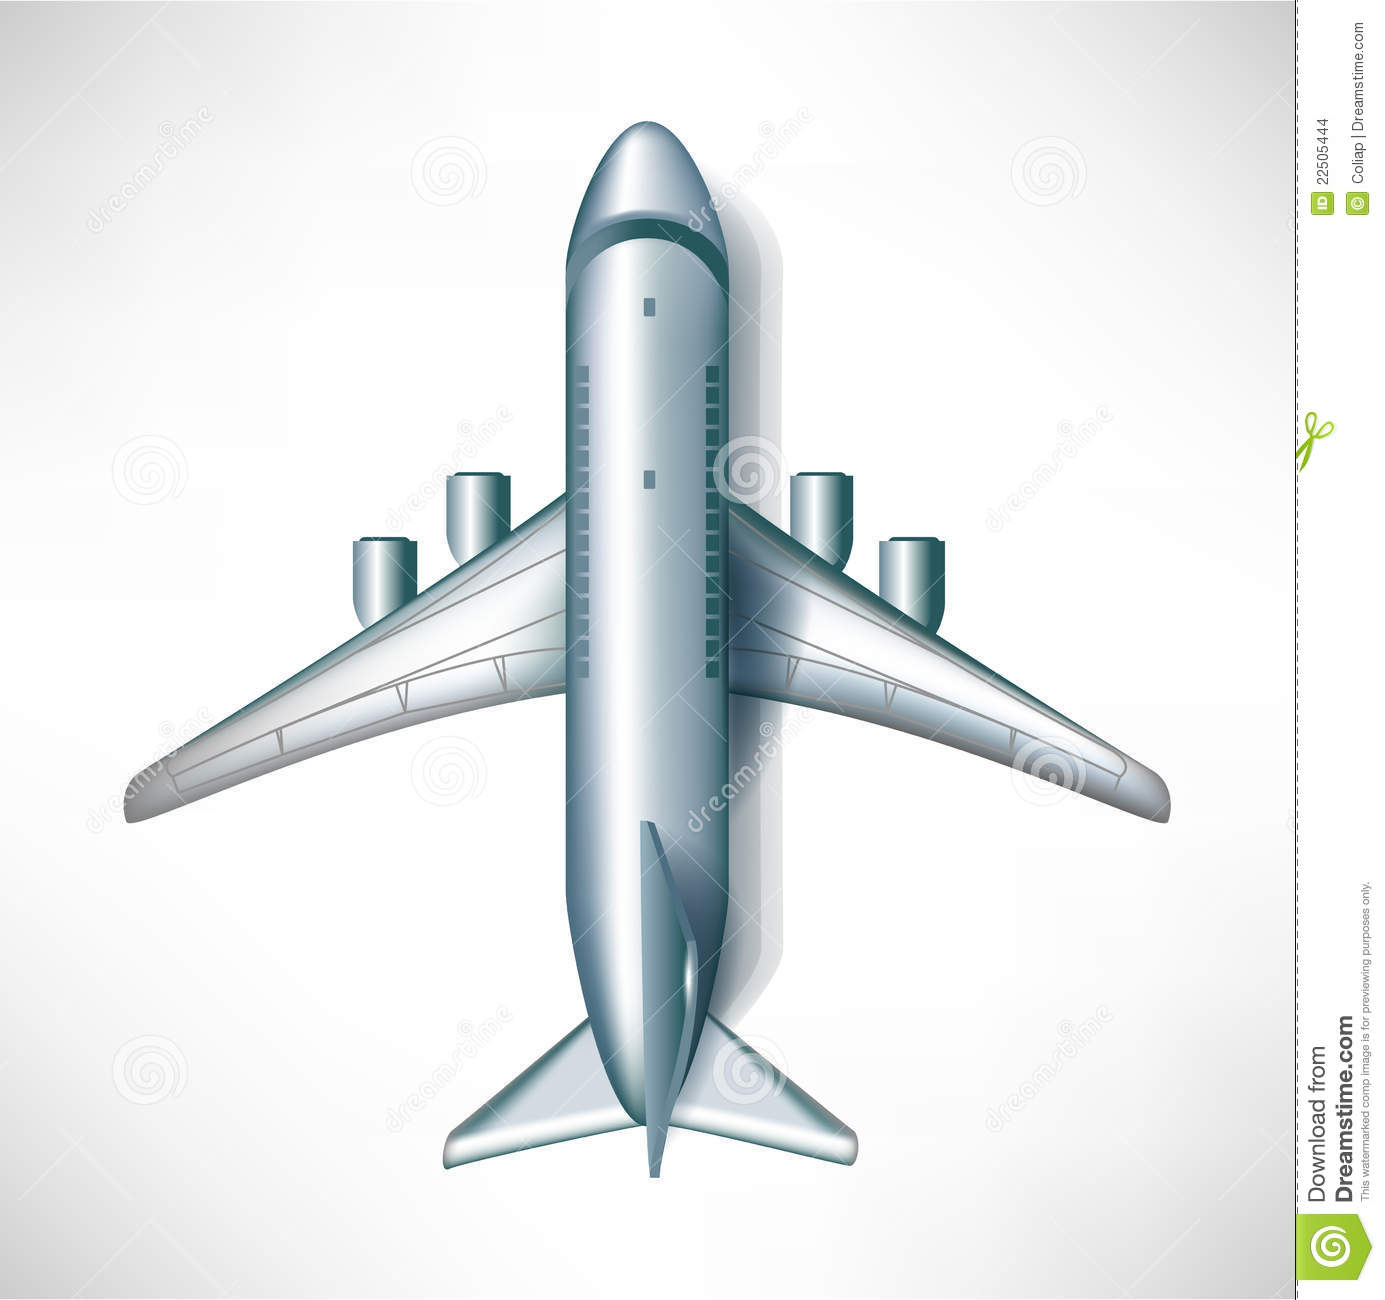 Air Plane Downward View Stock Images - Image: 22505444